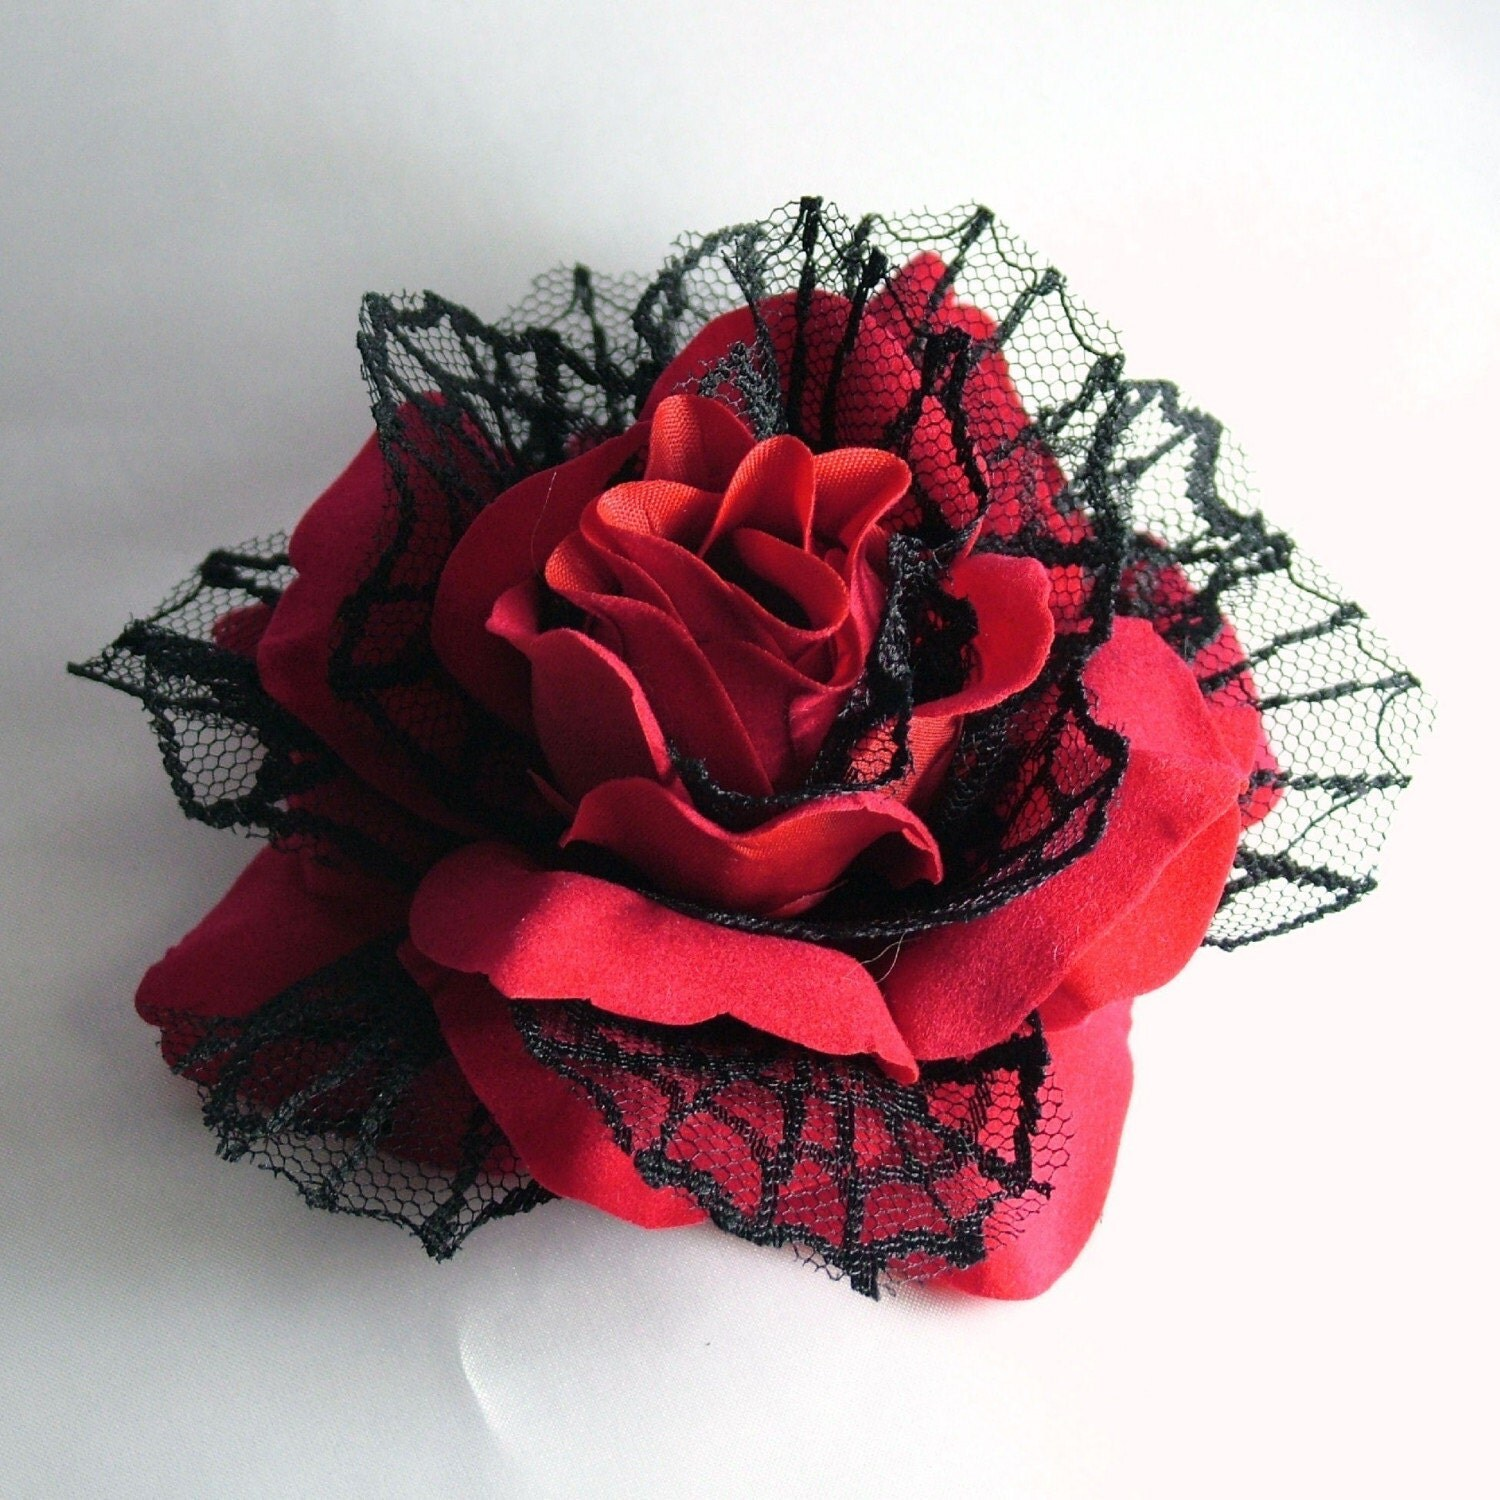 SEXY Big Red Hair Rose Flower with Black Net Spider Web Petals